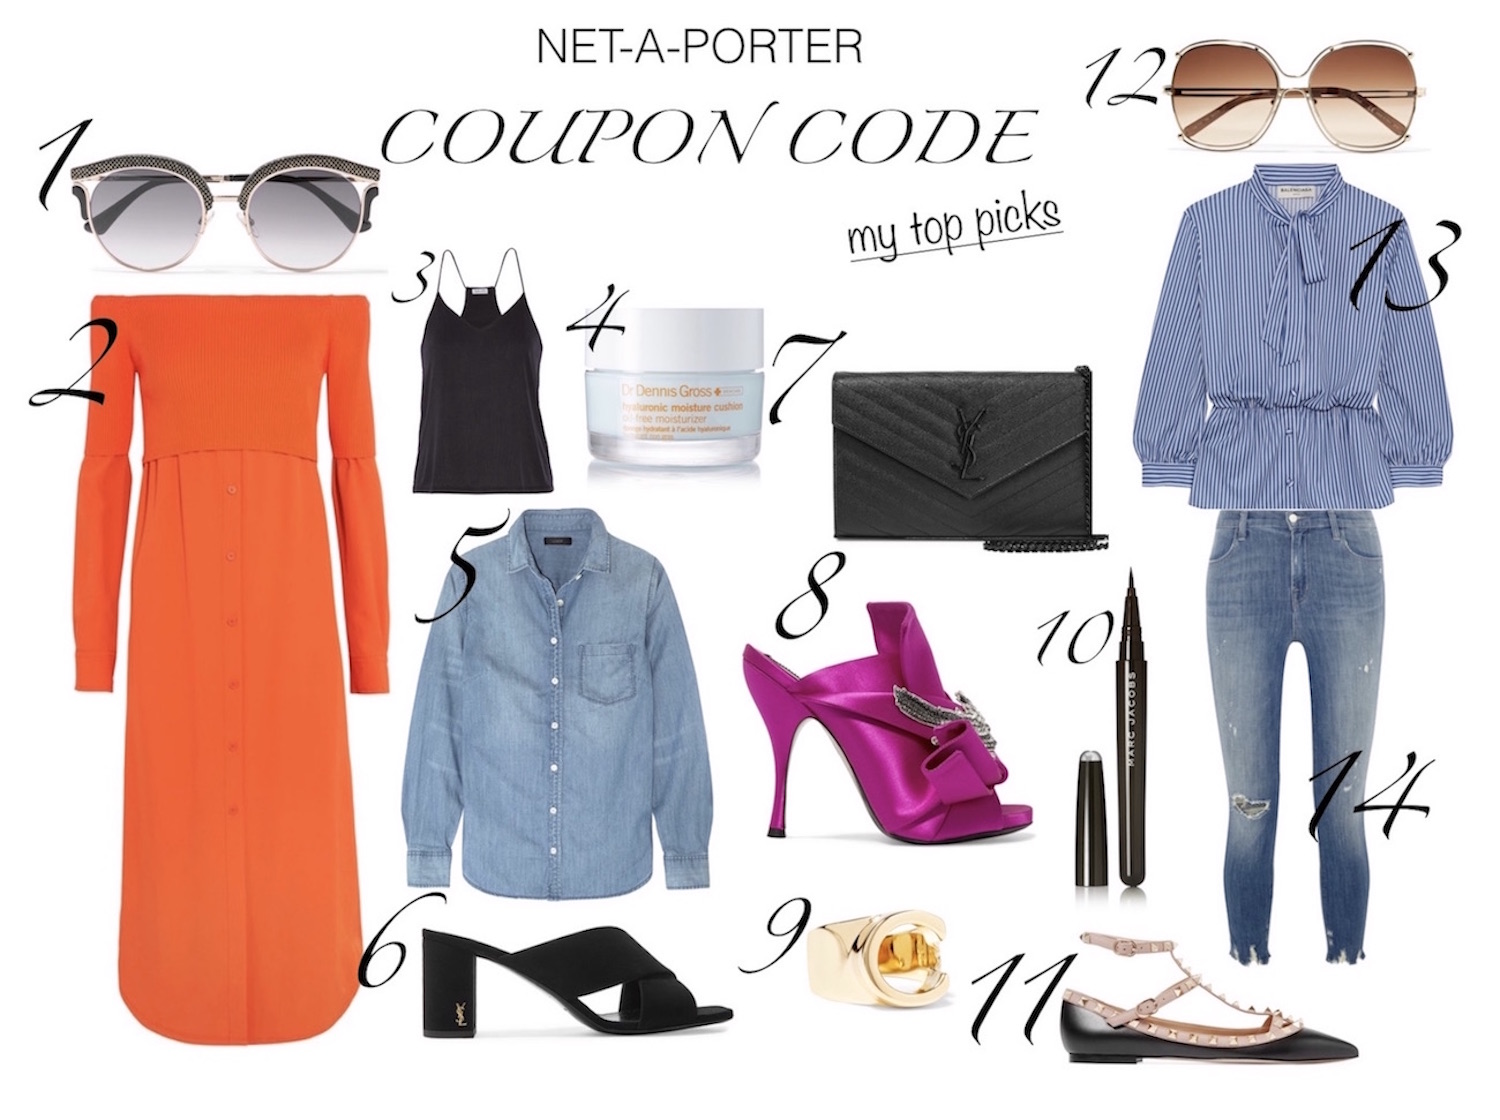 net-a-porter-coupon